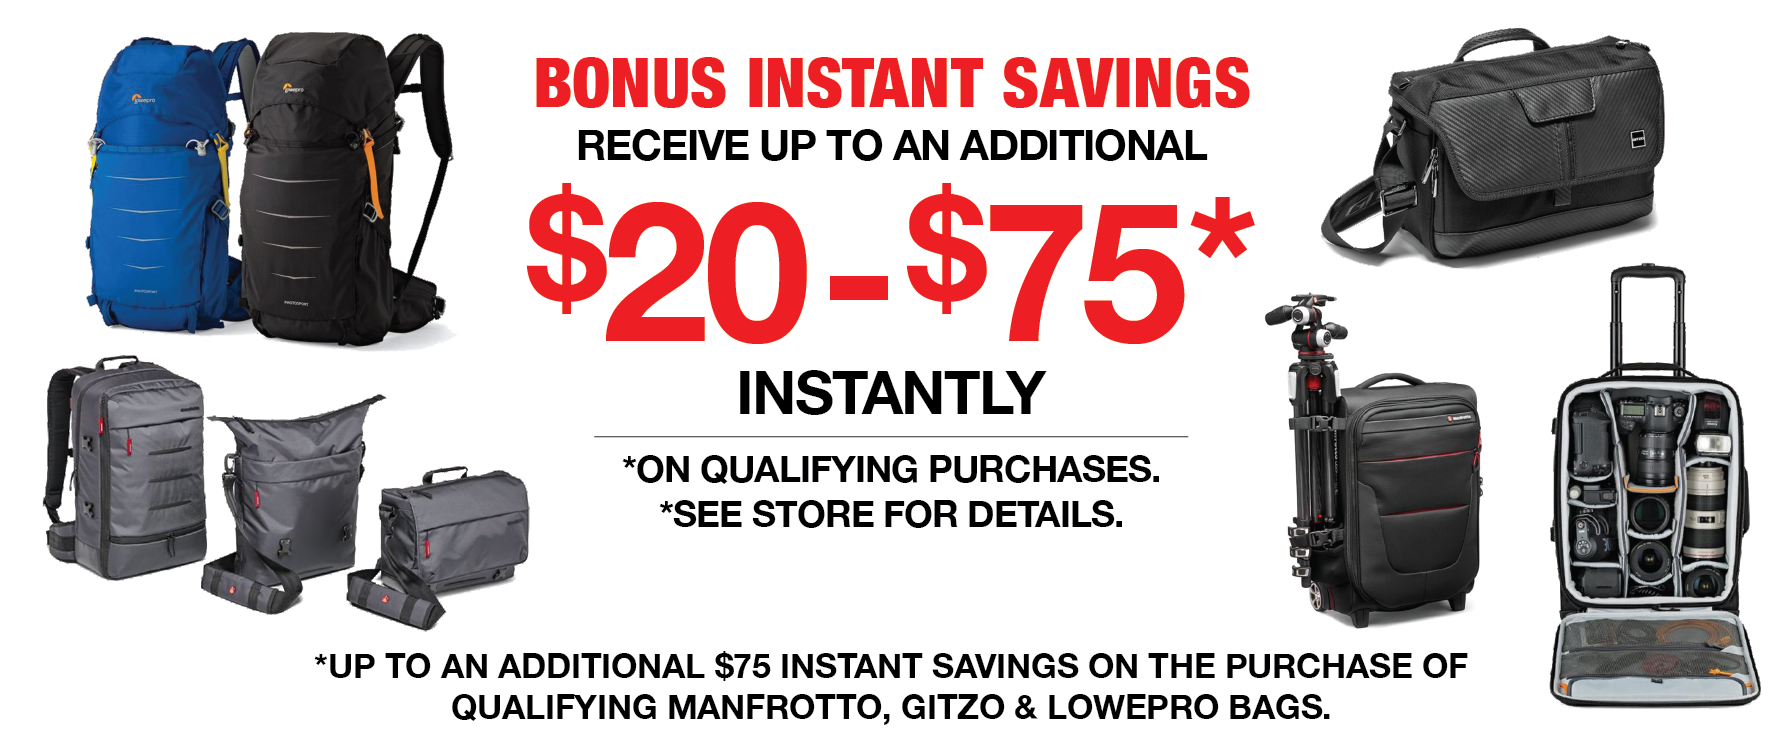 Bonus Instant Savings